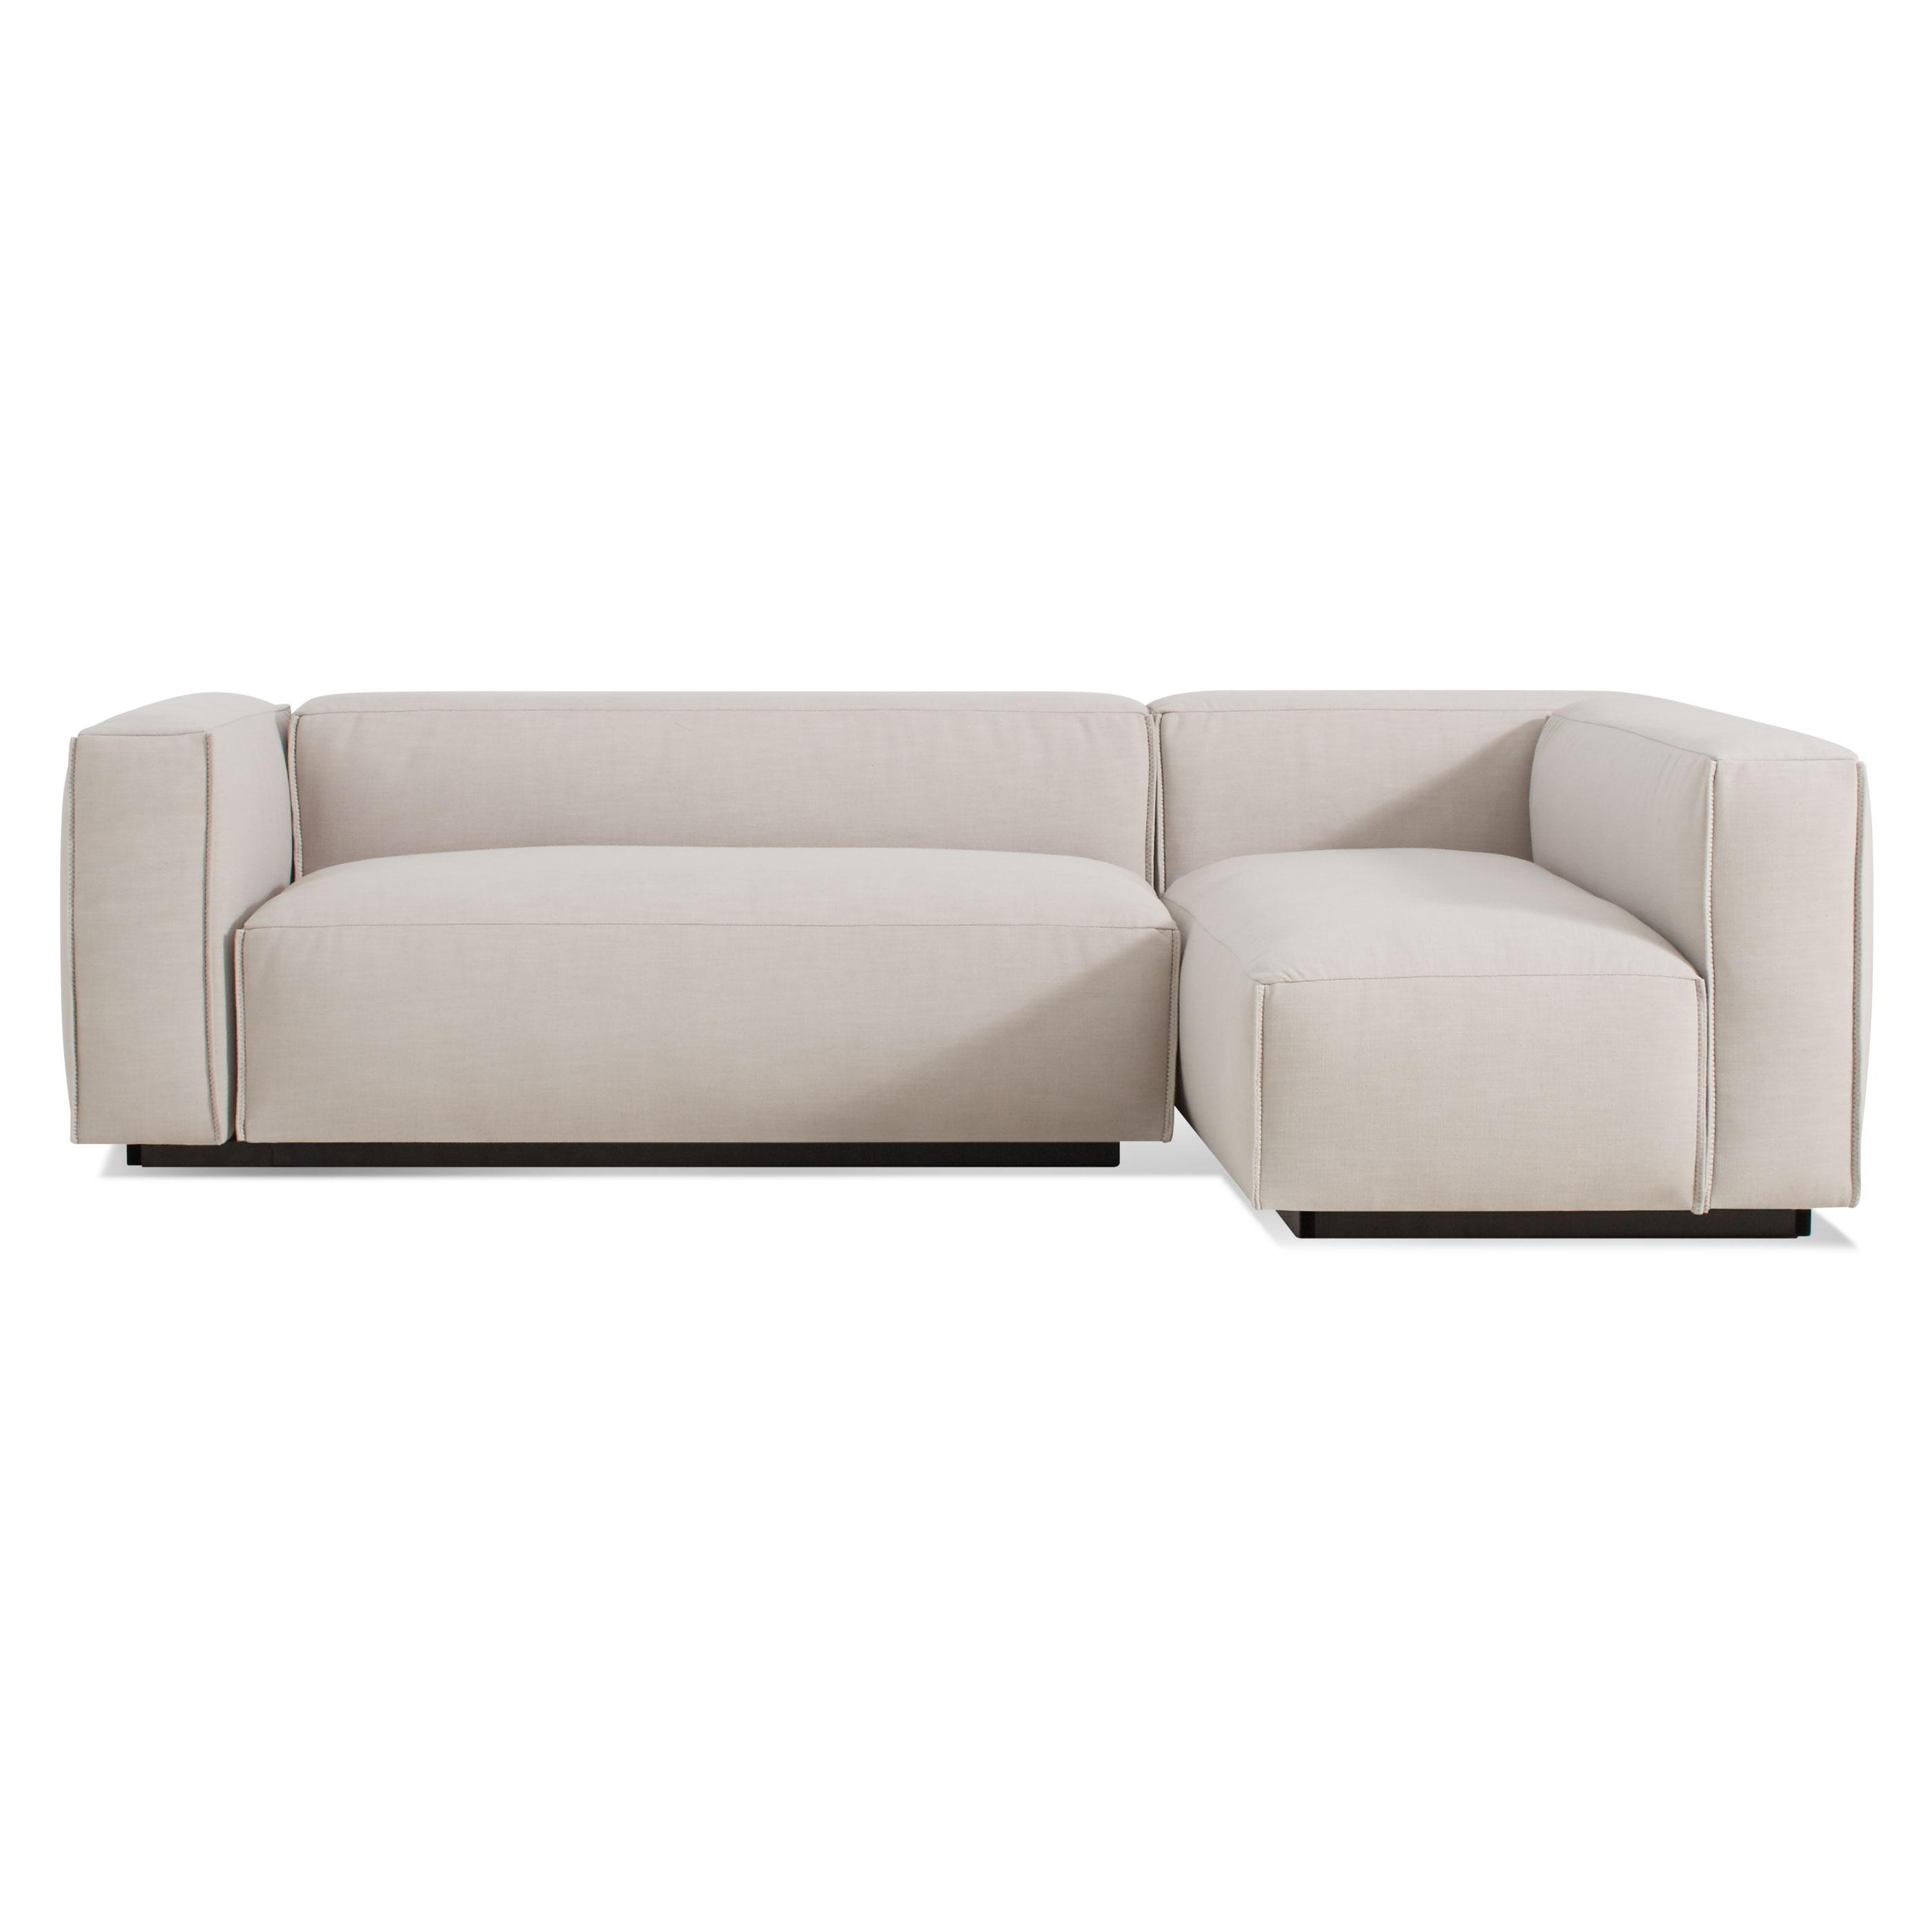 Cleon Small Modern Sectional Sofa | Blu Dot Regarding Small Modern Sofas (Image 7 of 20)